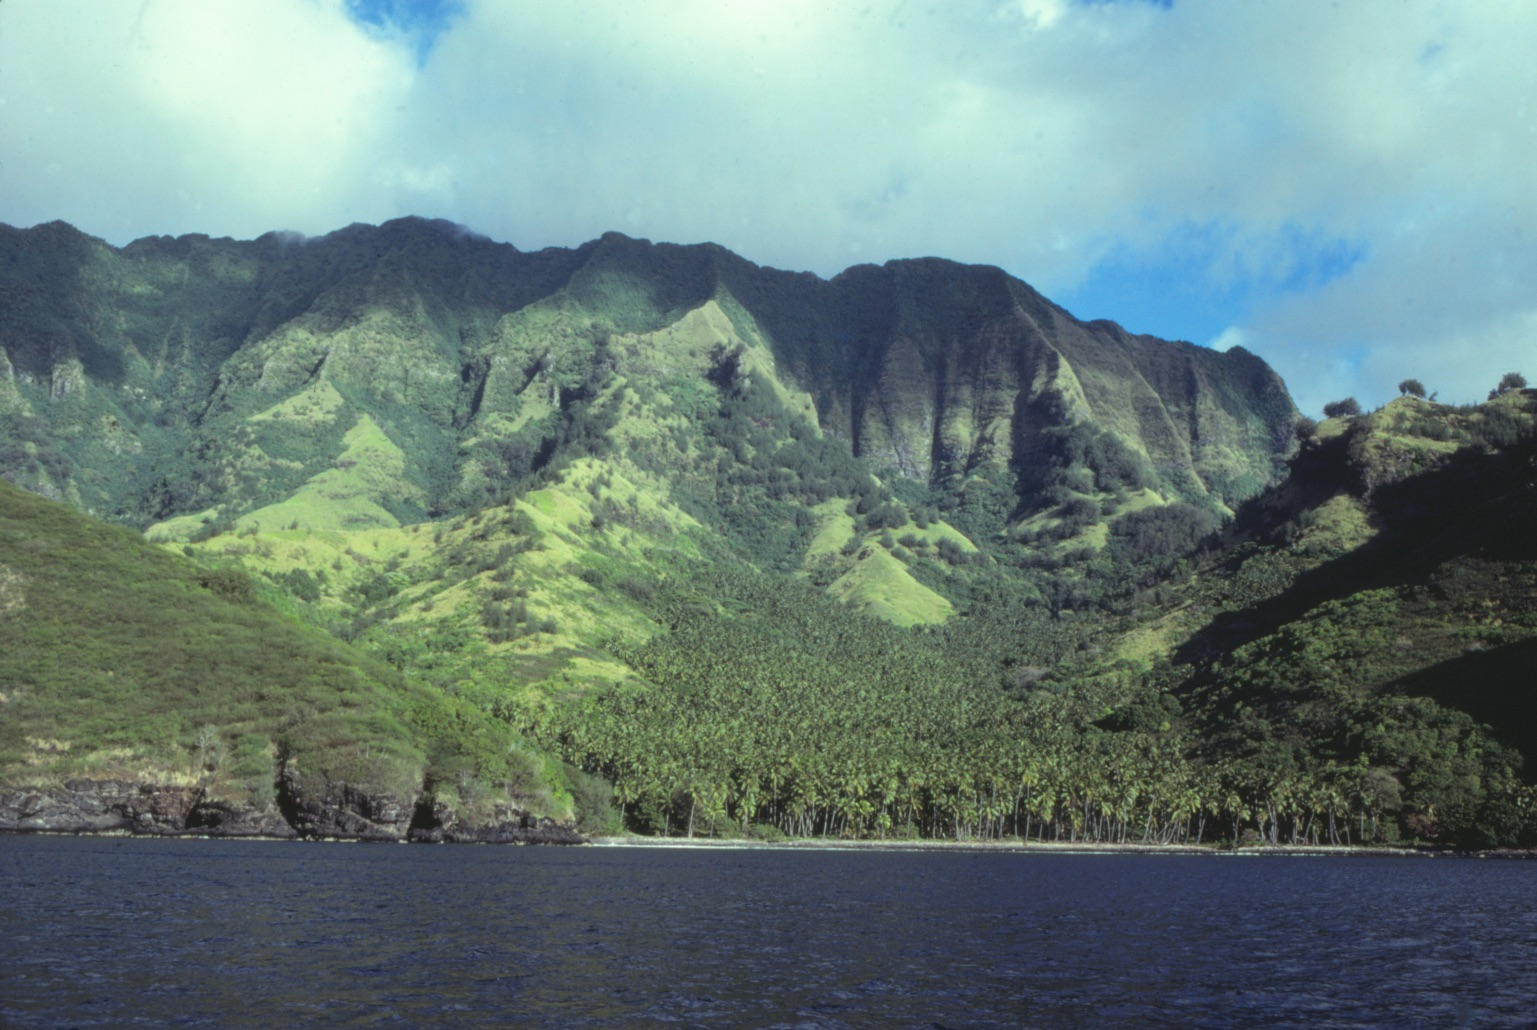 Hanamiai Valley, a 20 minute walk from Vaitahu (photographed in 1981).